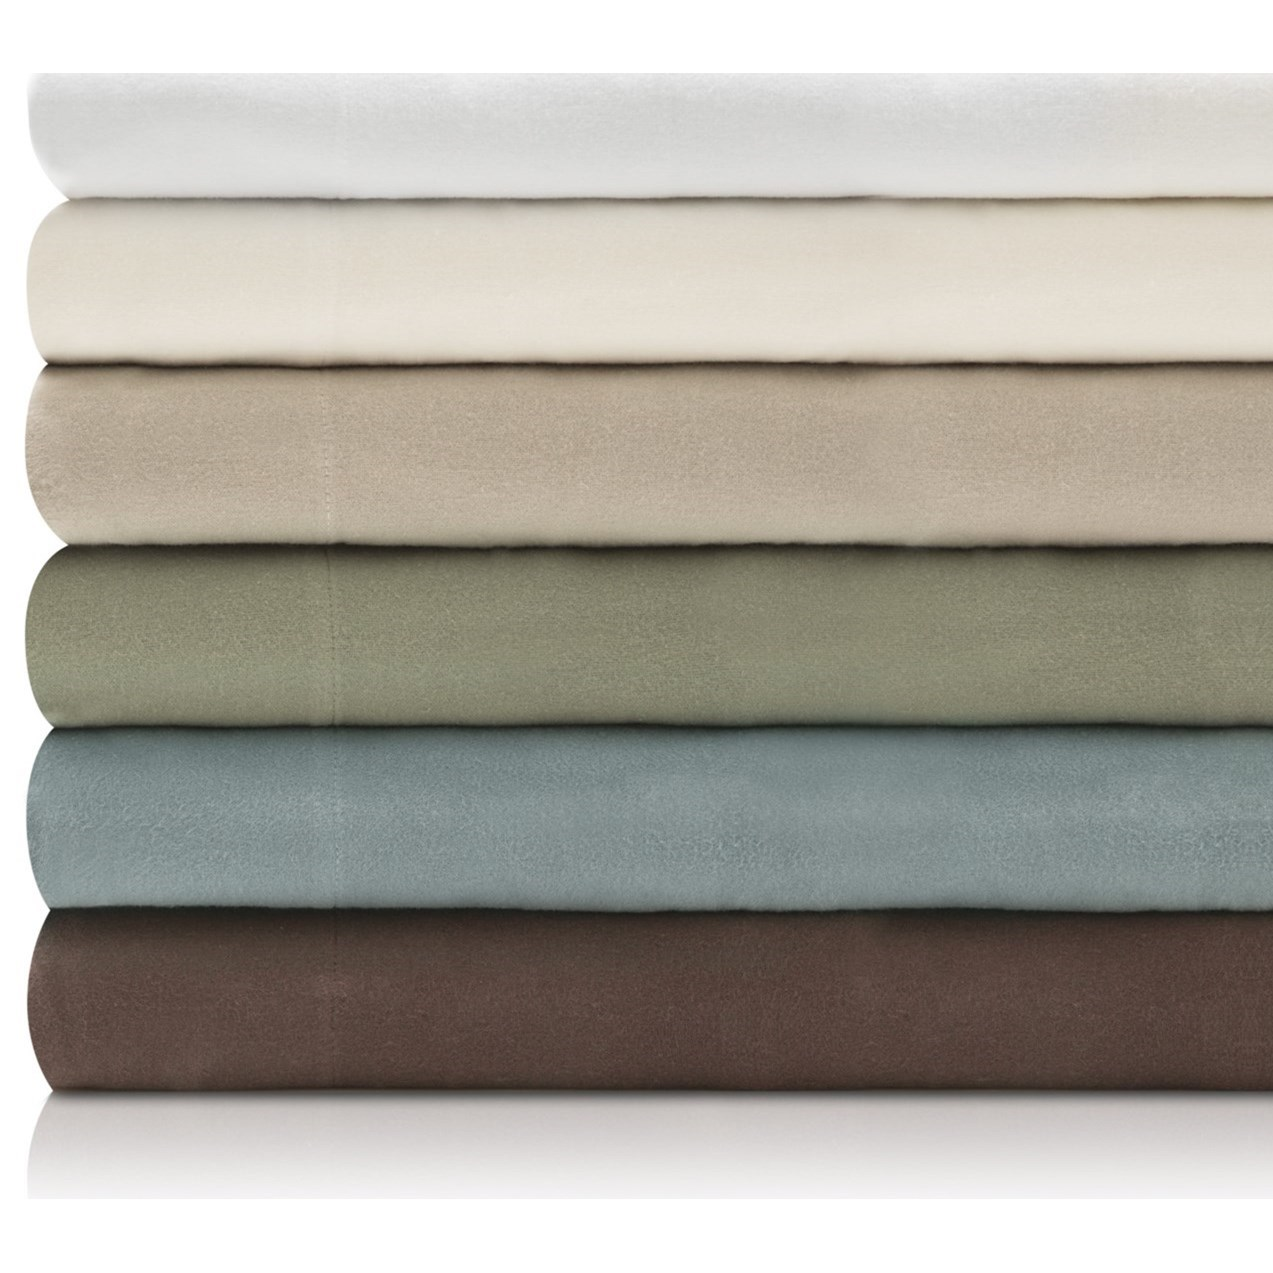 Malouf Portuguese Flannel Twin Woven™ Portuguese Flannel Sheet Set - Item Number: WO19TTPAFS